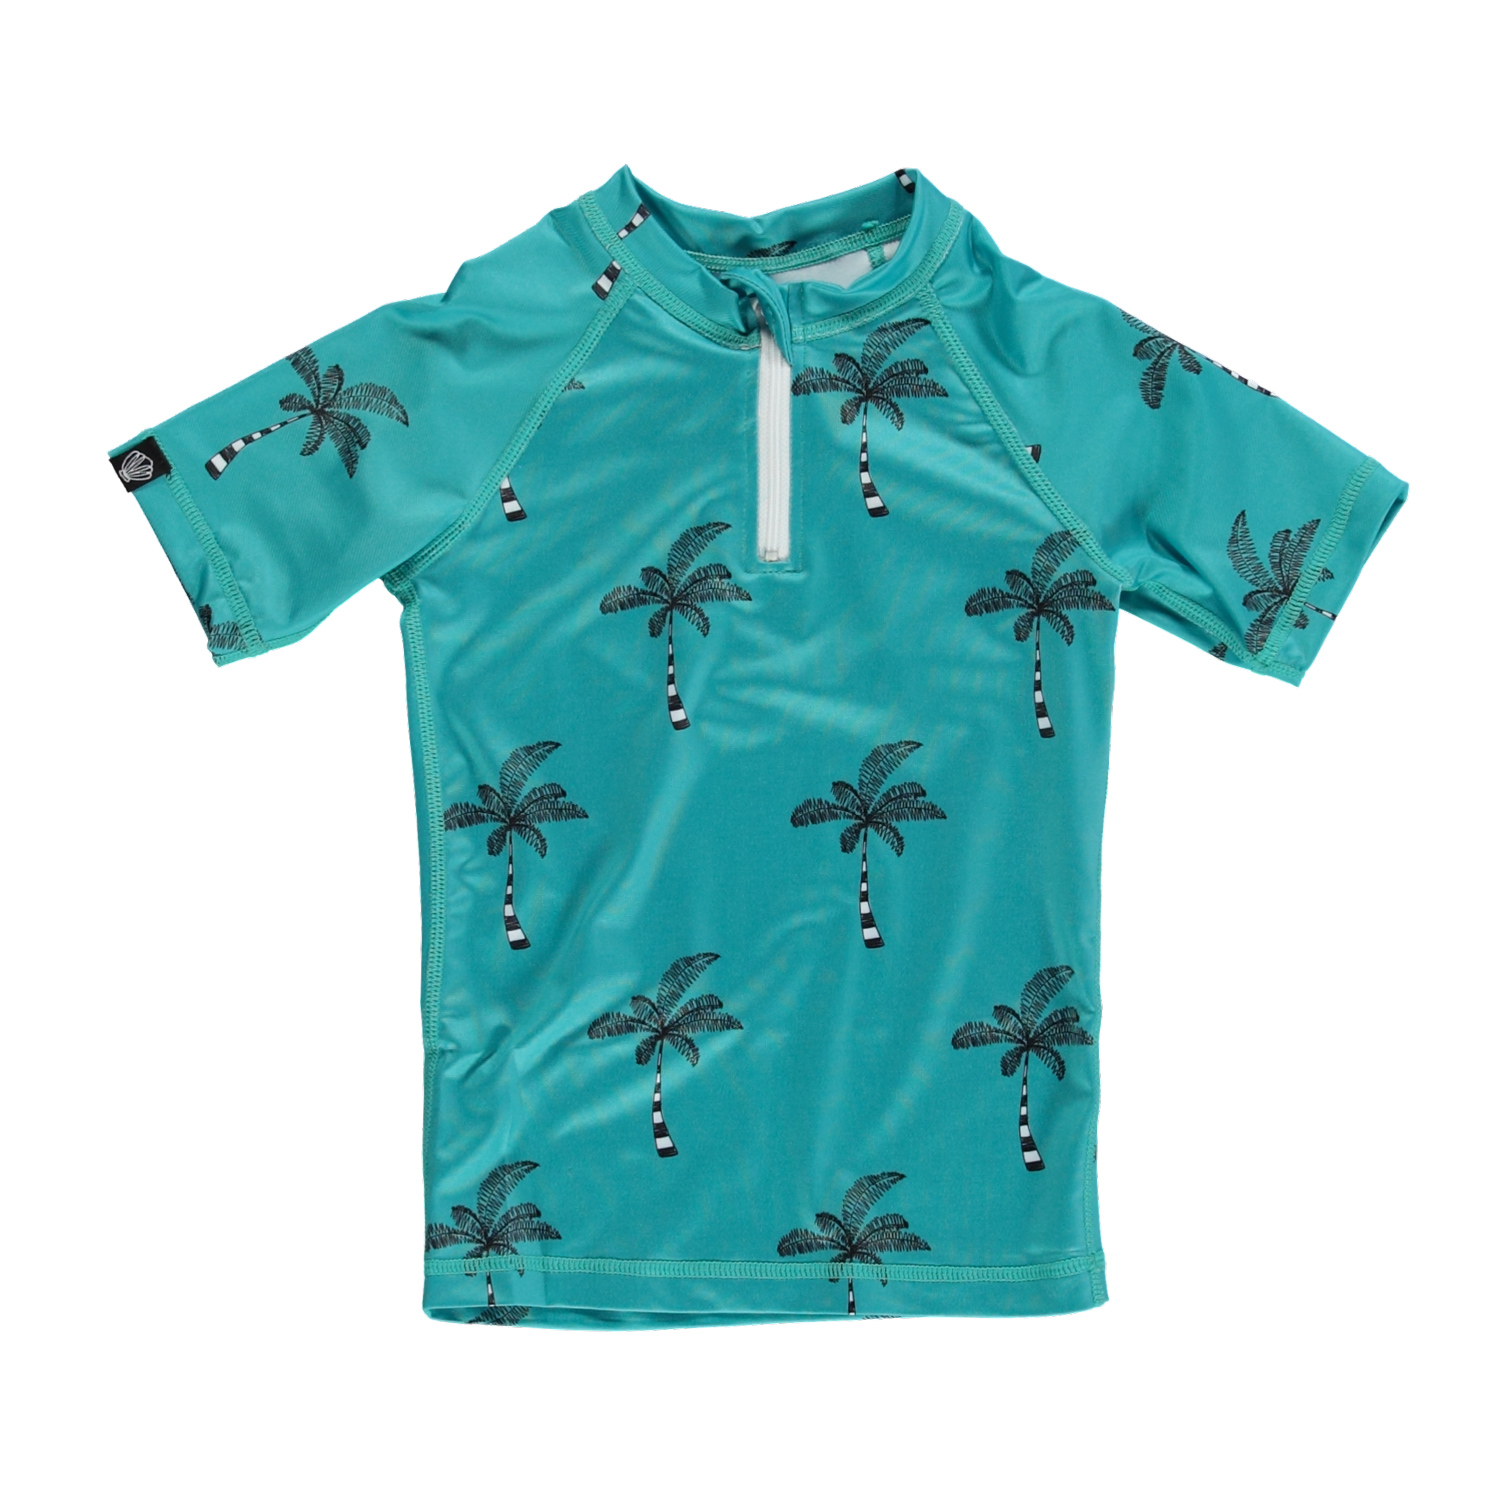 BEACH & BANDITS | COCONUT TREE UV50 BLUSE (STR. 92-122)